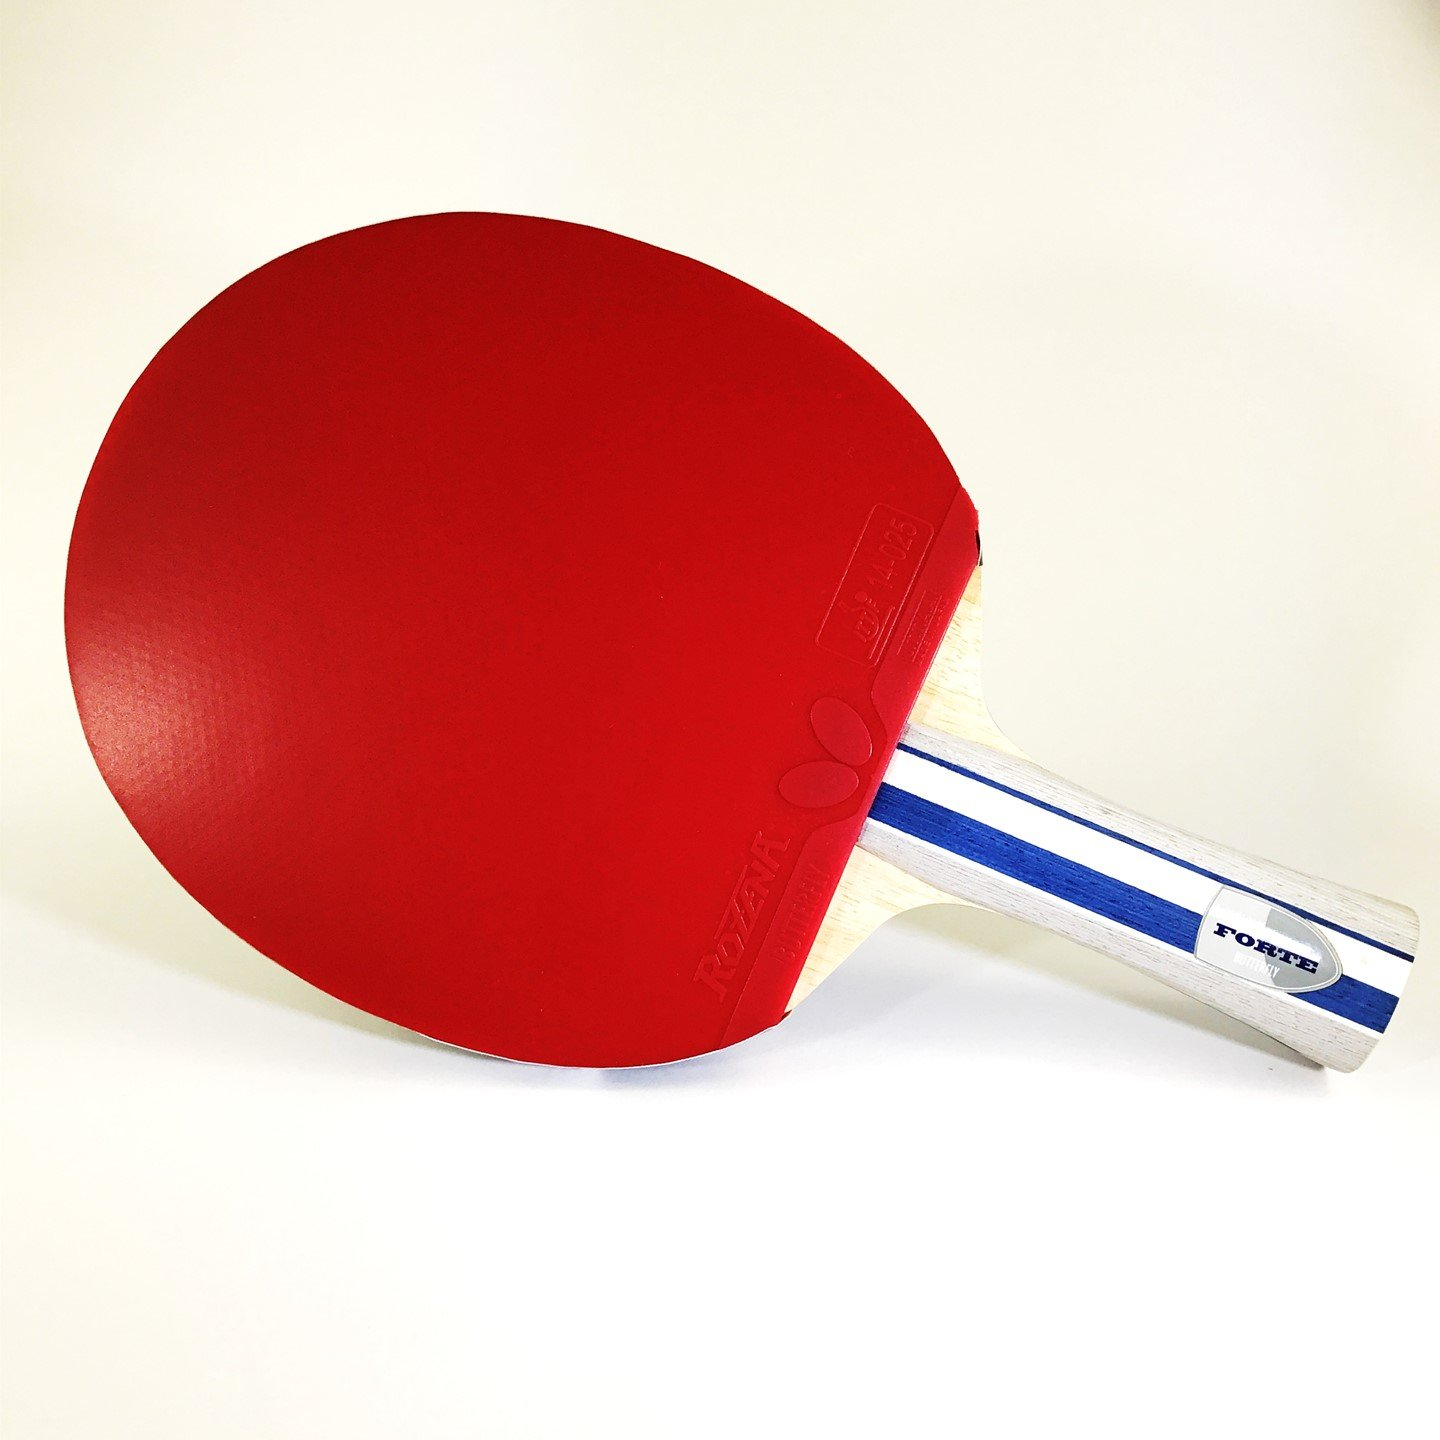 Butterfly Boll Forte Blade with Rozena 2.1mm Rubbers Pro-Line Table Tennis Racket – Professional Ping Pong Paddle